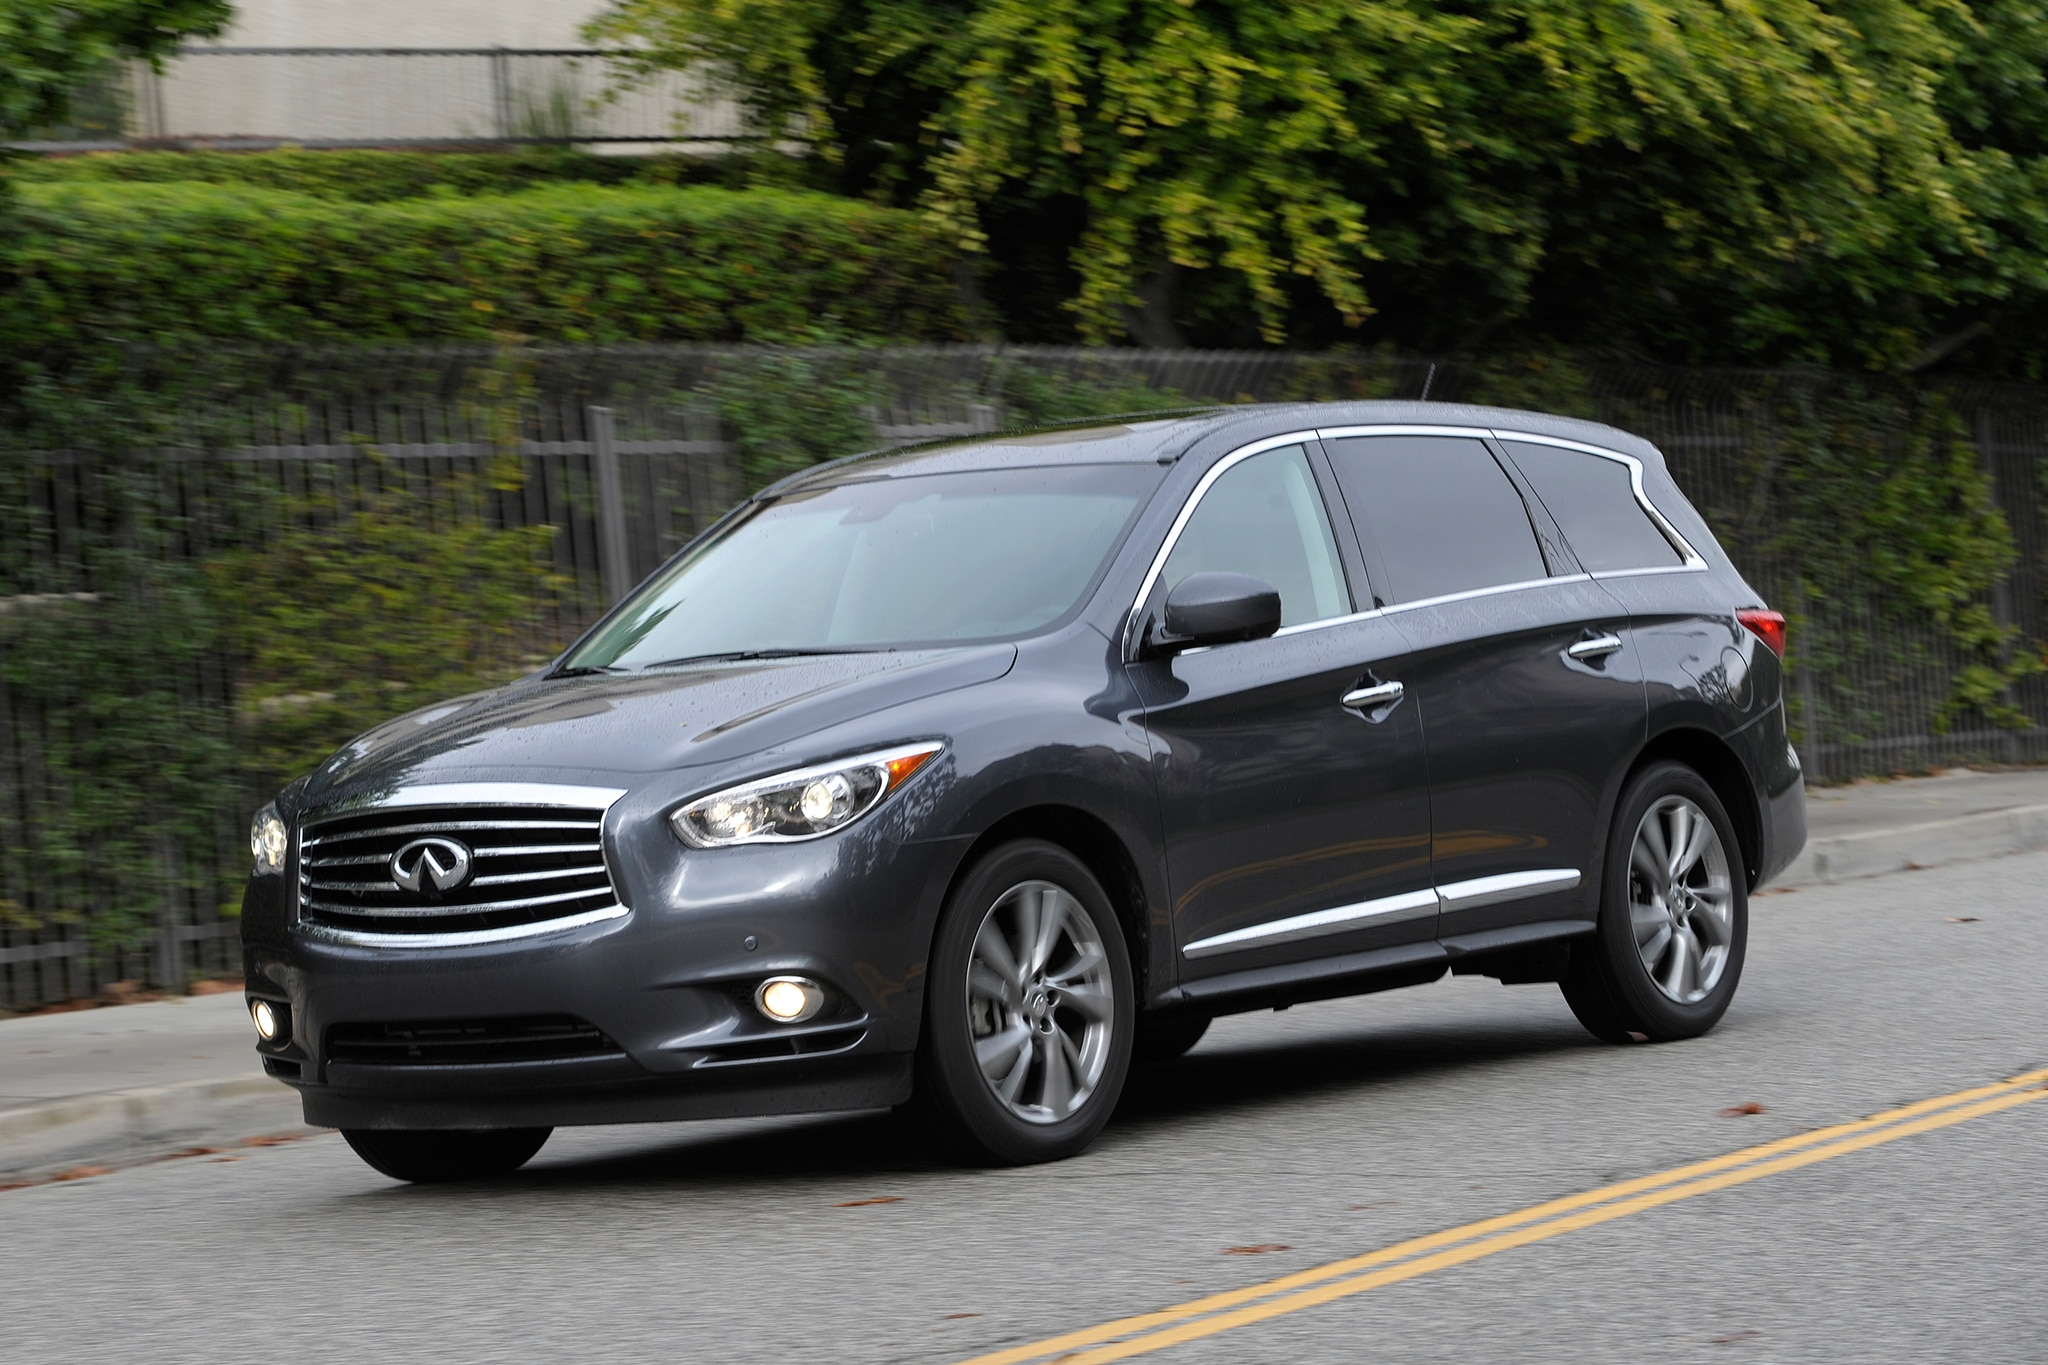 2013 Infiniti JX35 Three Quarters View 3